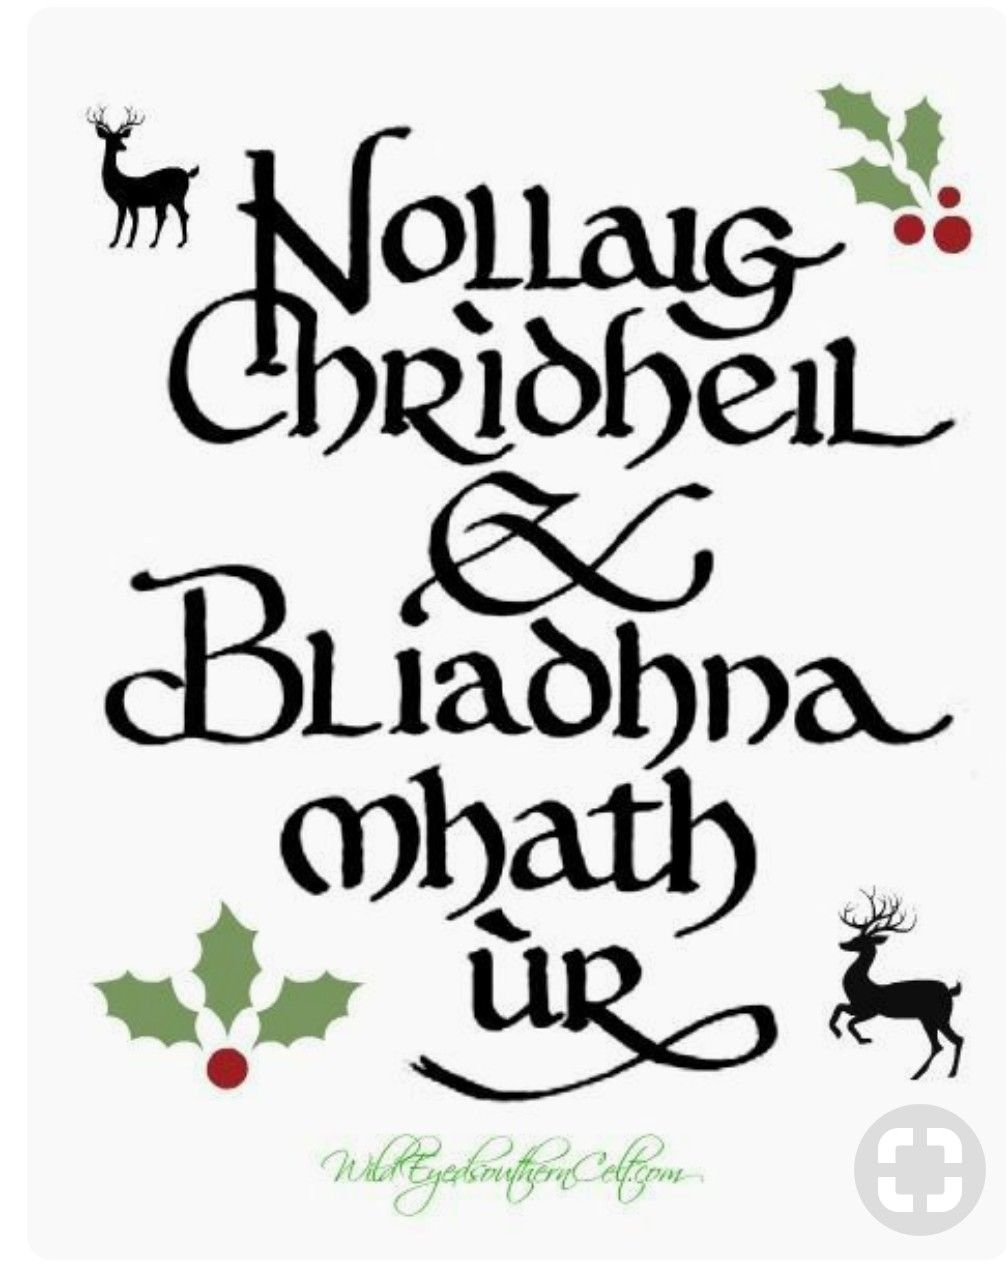 Merry Christmas and Happy New Year   celtic   Pinterest   Merry ...